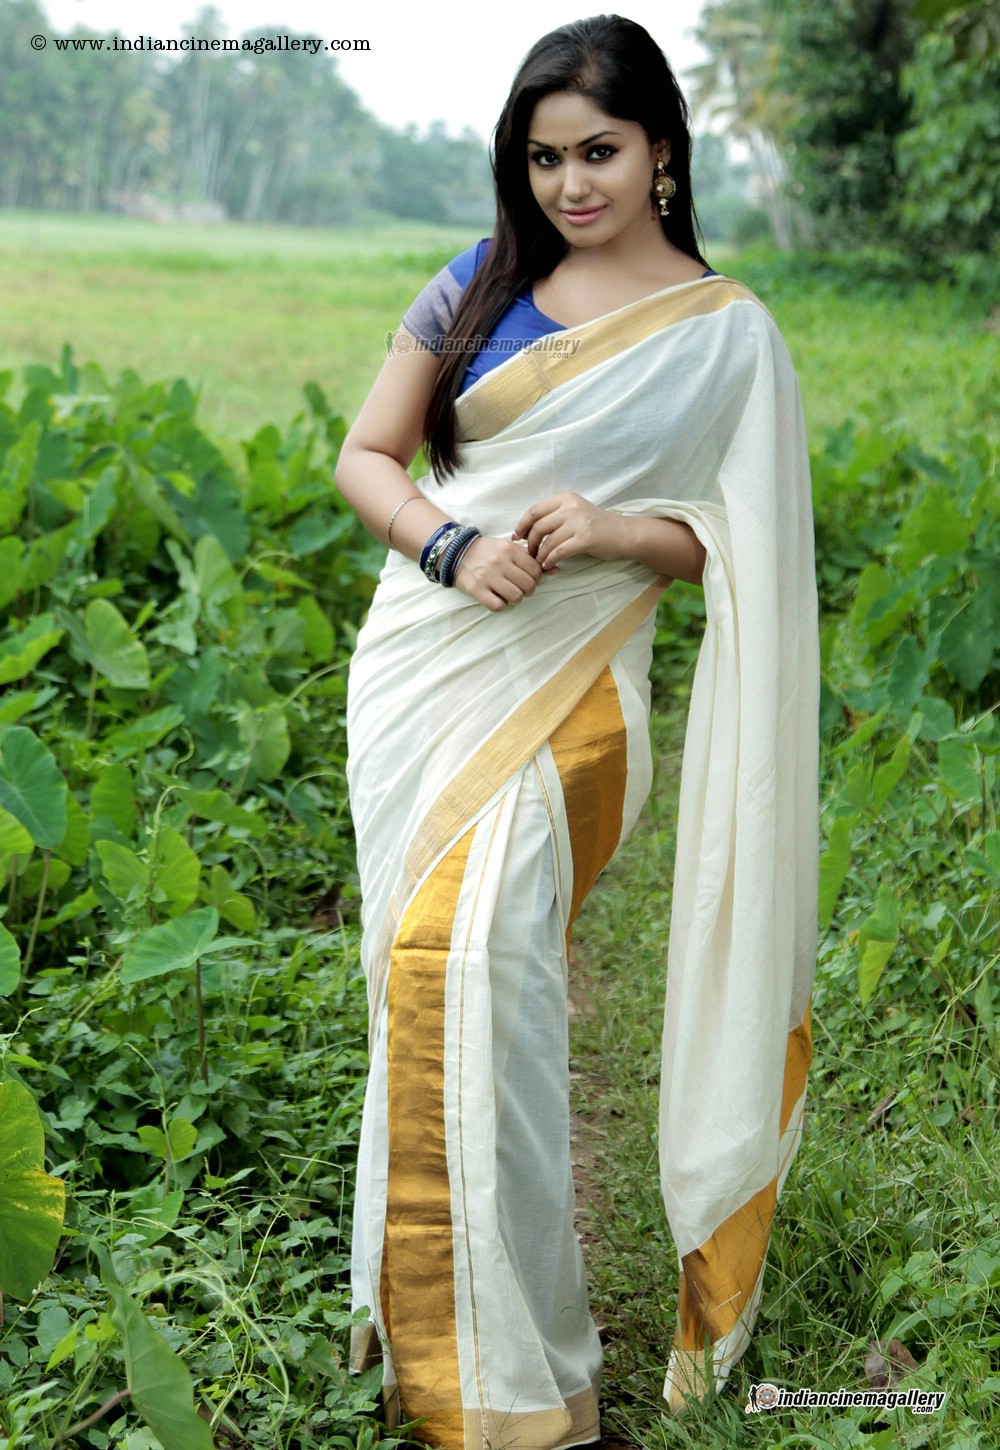 Malayalam Hot Actress Sexy In White Saary Photos - Latest -5150